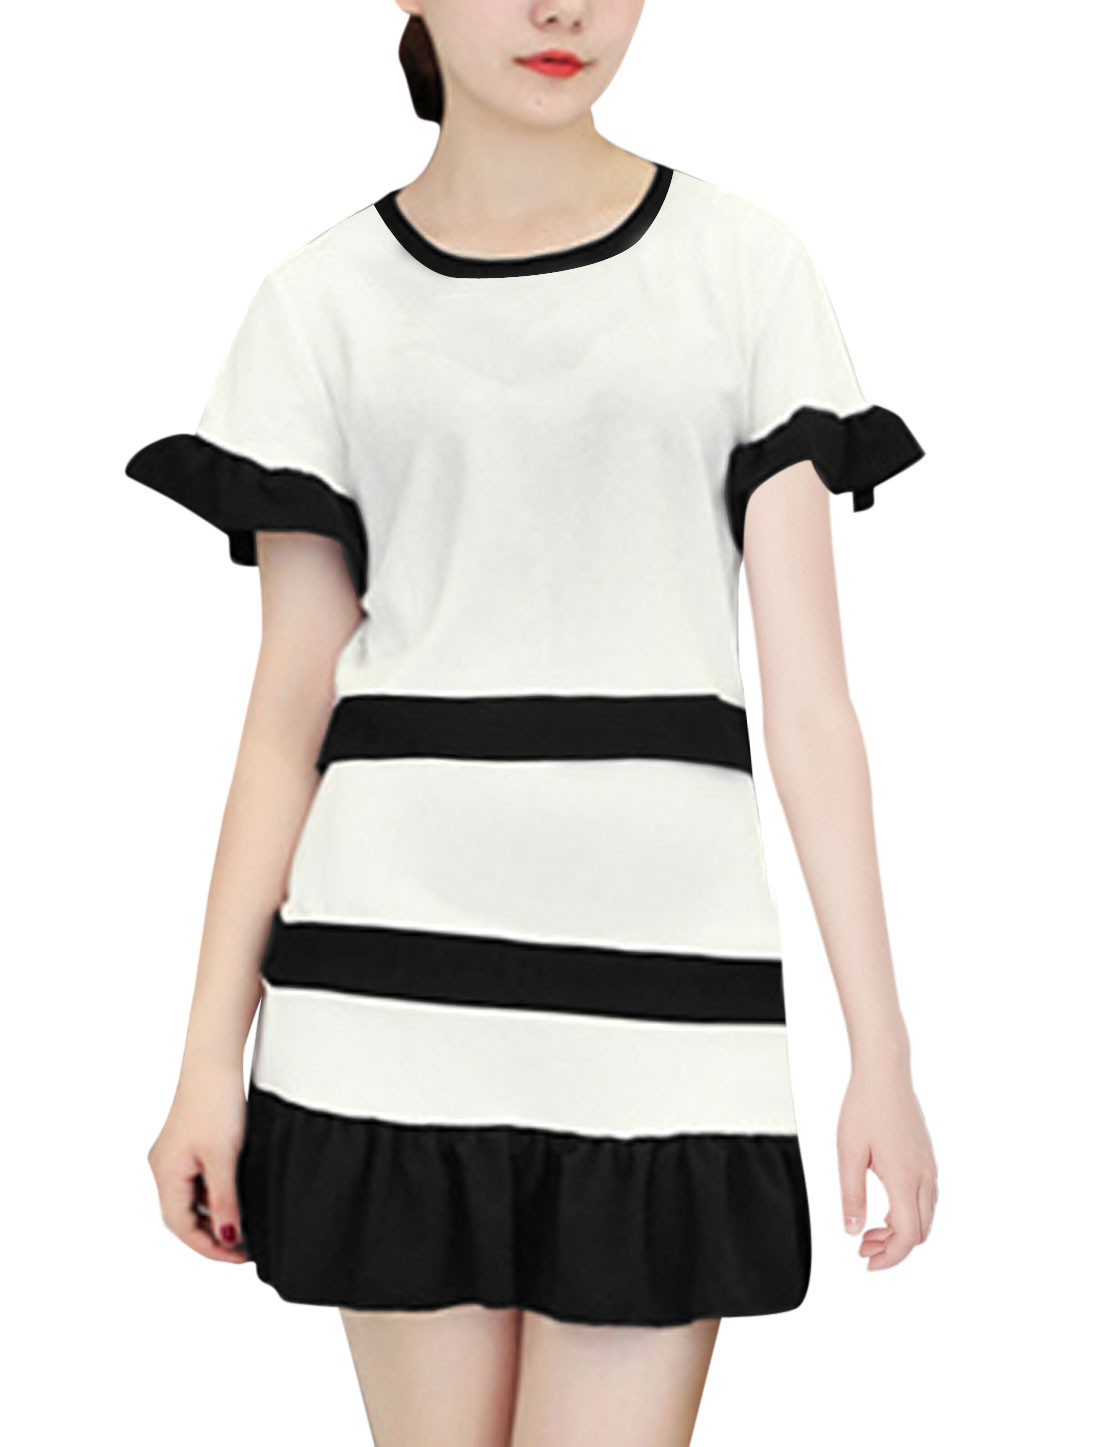 Lady Short Sleeve Color Block Top w Elastic Waist Skirt White XS